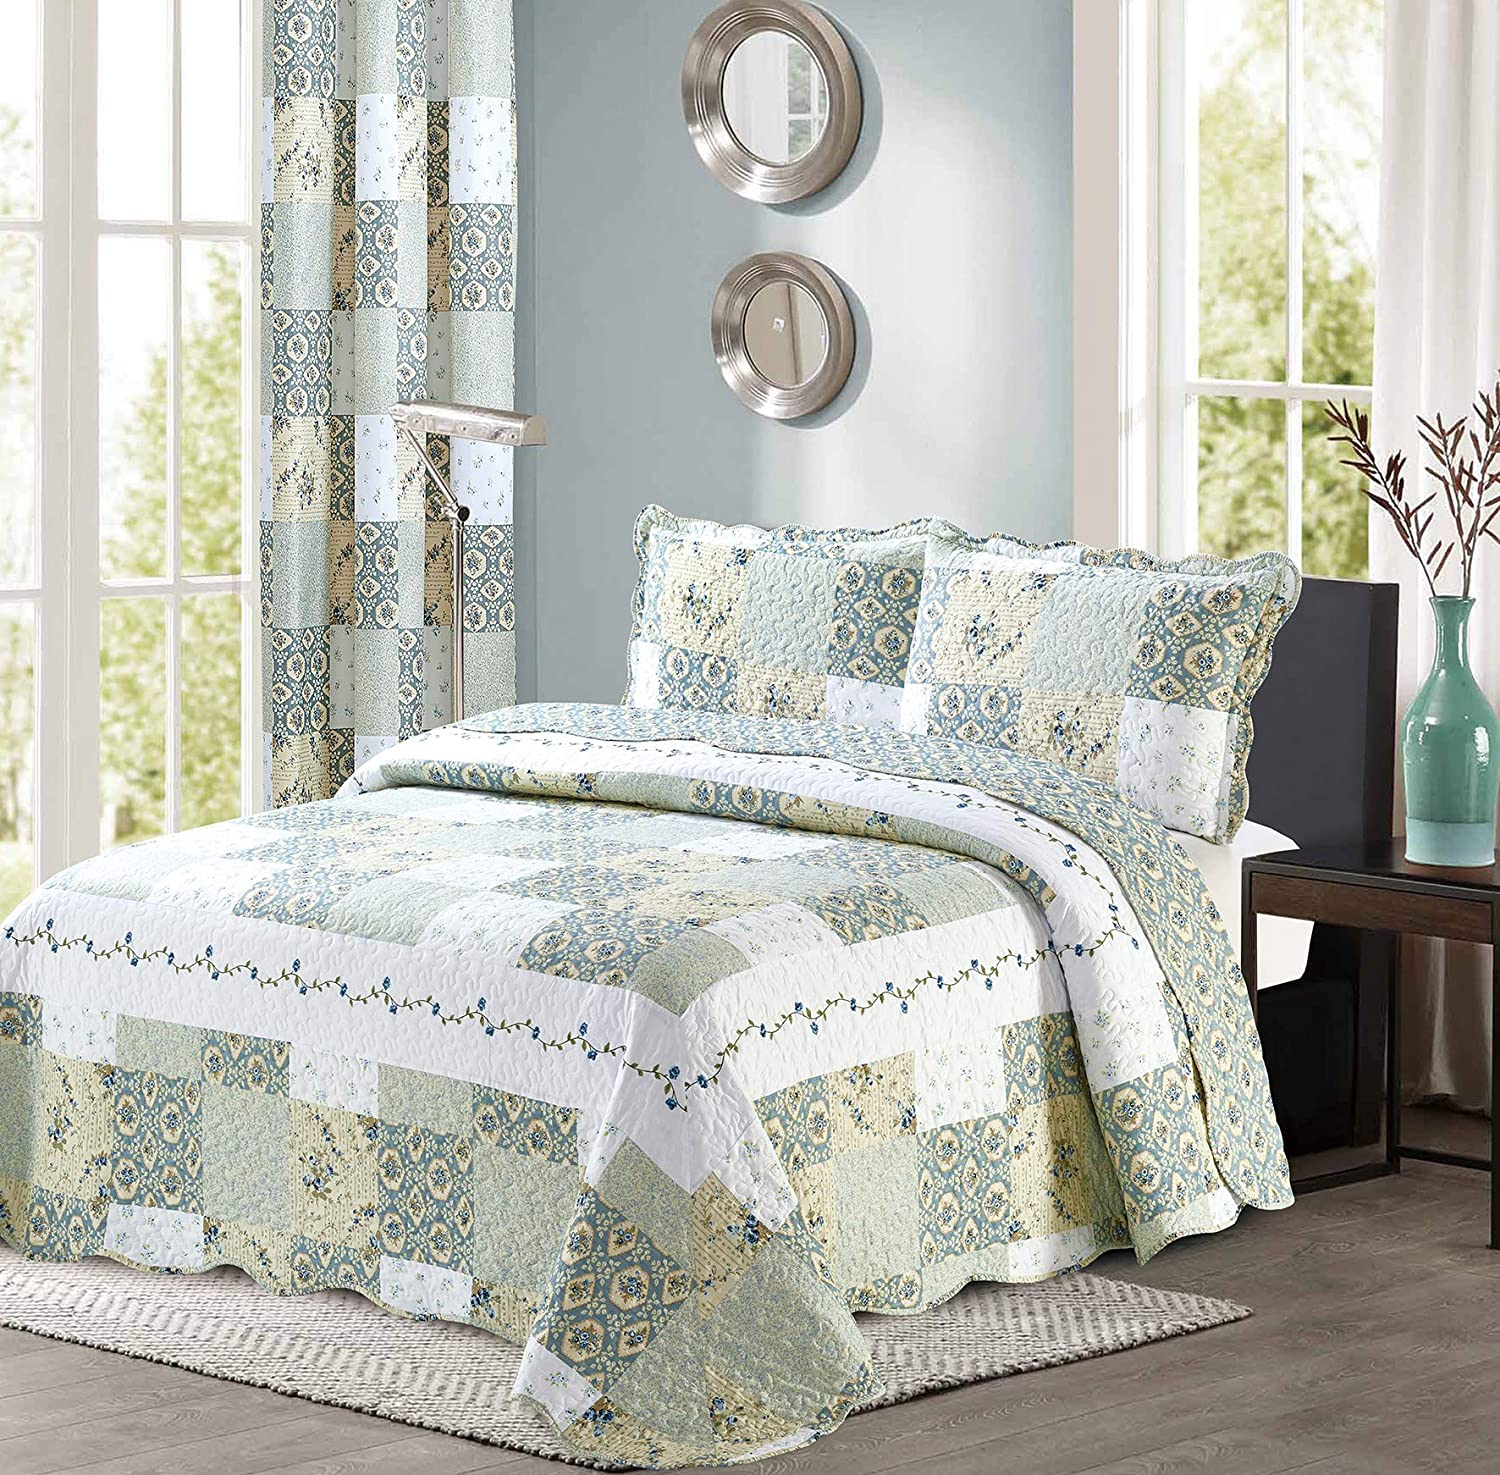 All American Collection New Reversible 2pc Floral Printed Patchwork Blue/Green Bedspread/Quilt Set Matching Curtains Available (Twin Size)